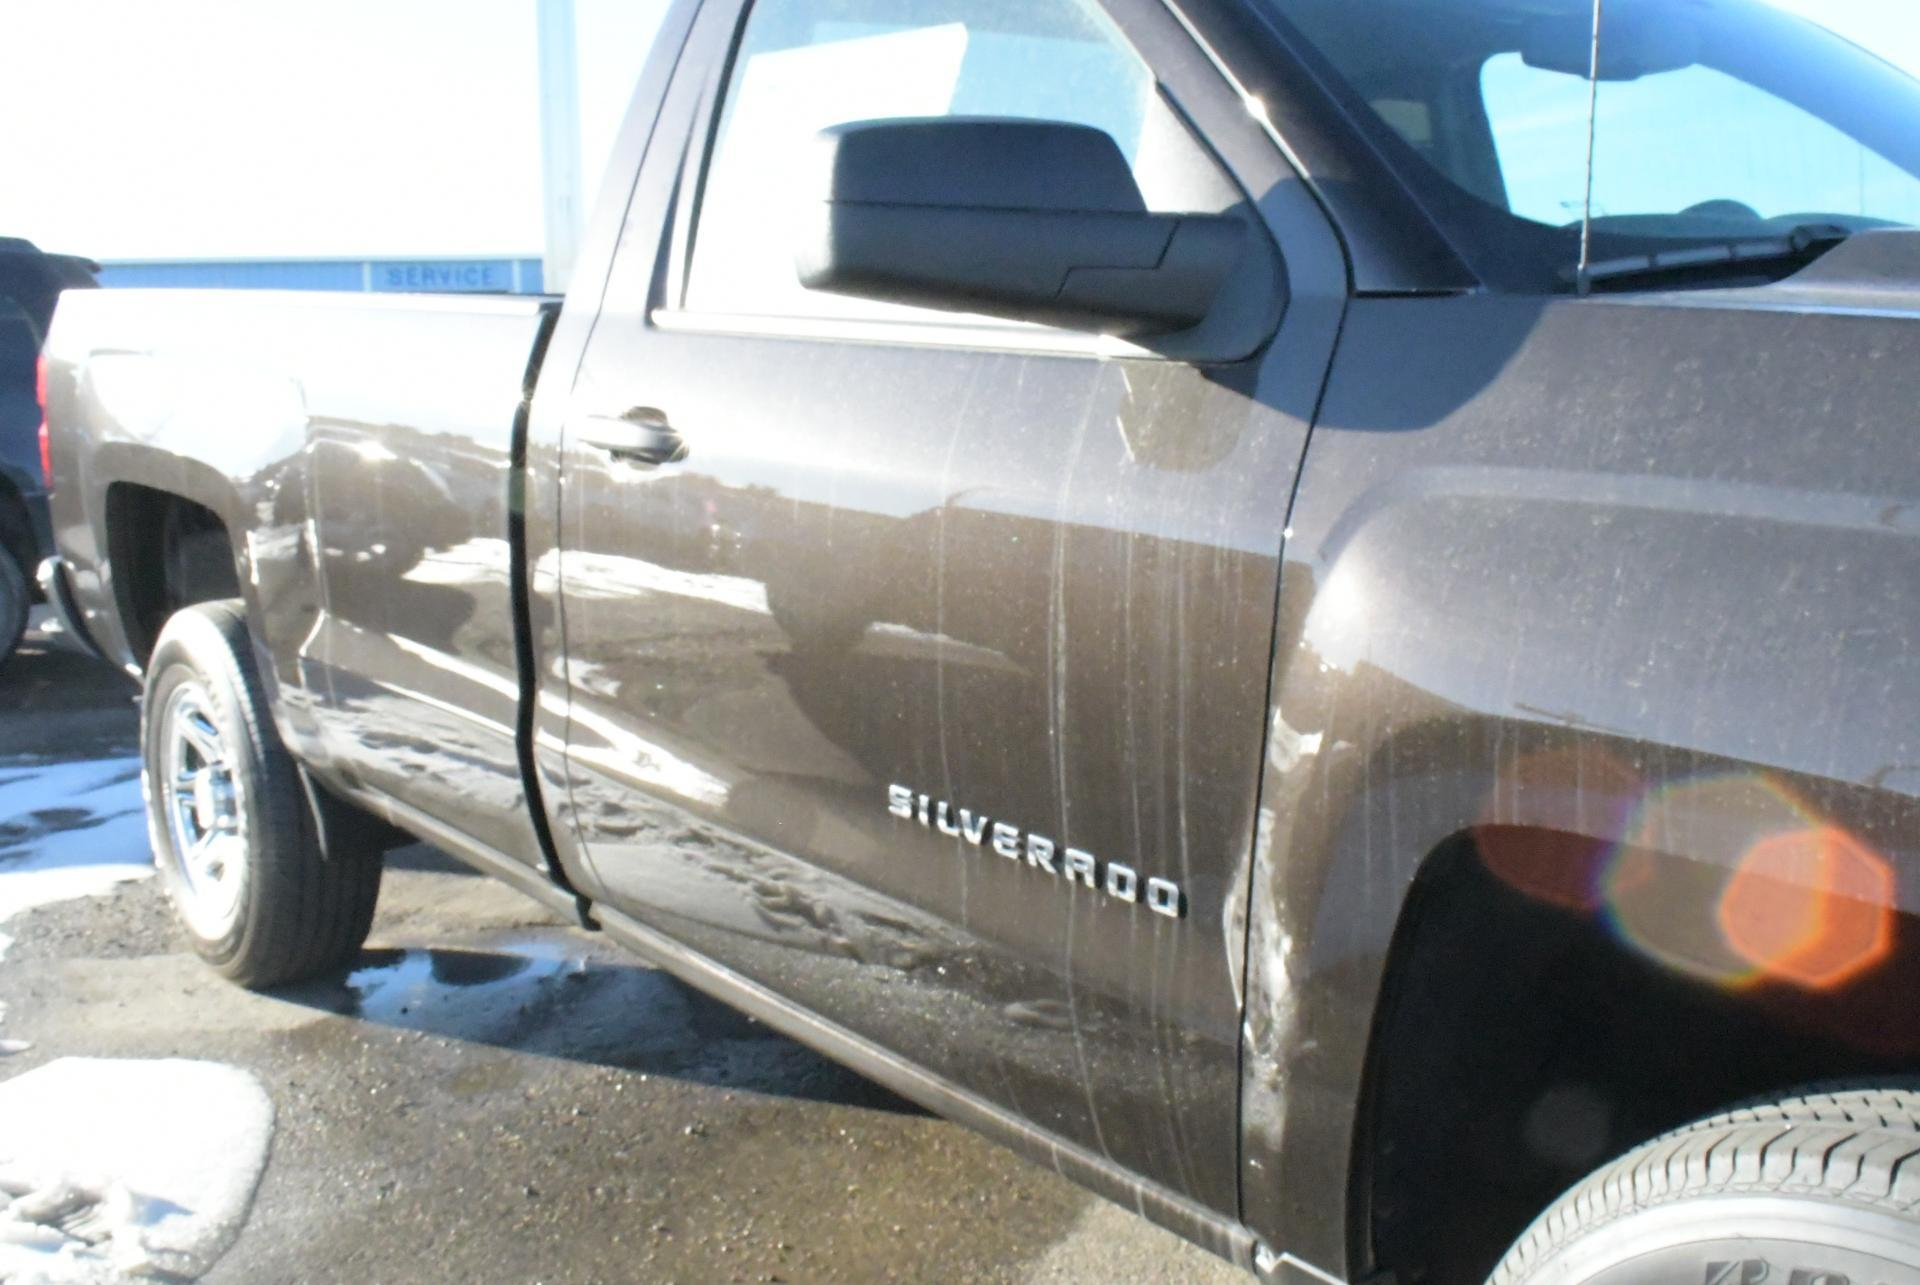 2018 Silverado 1500 Regular Cab 4x4,  Pickup #C9265 - photo 15